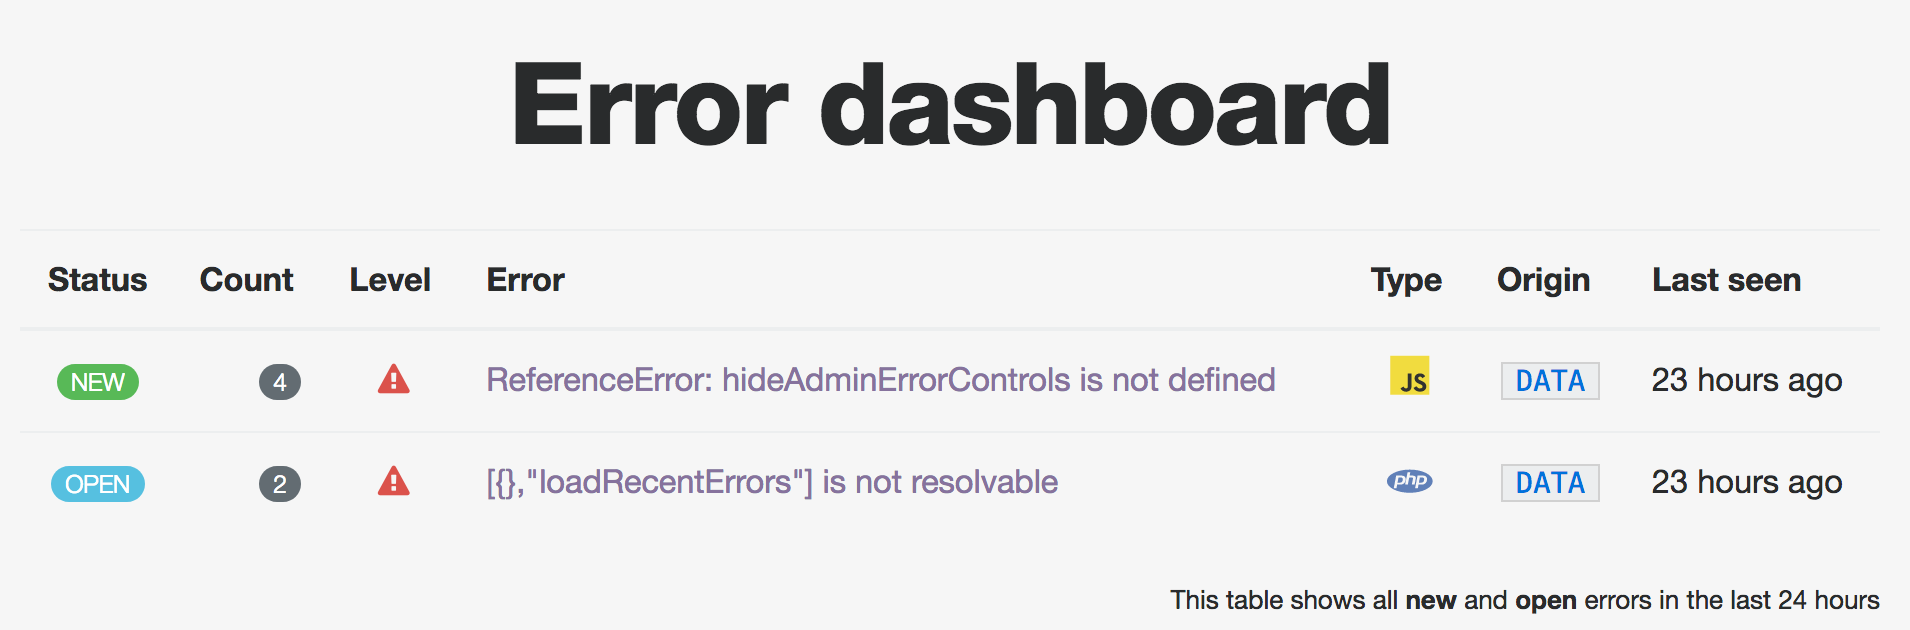 This is what our new error dashboard looks like